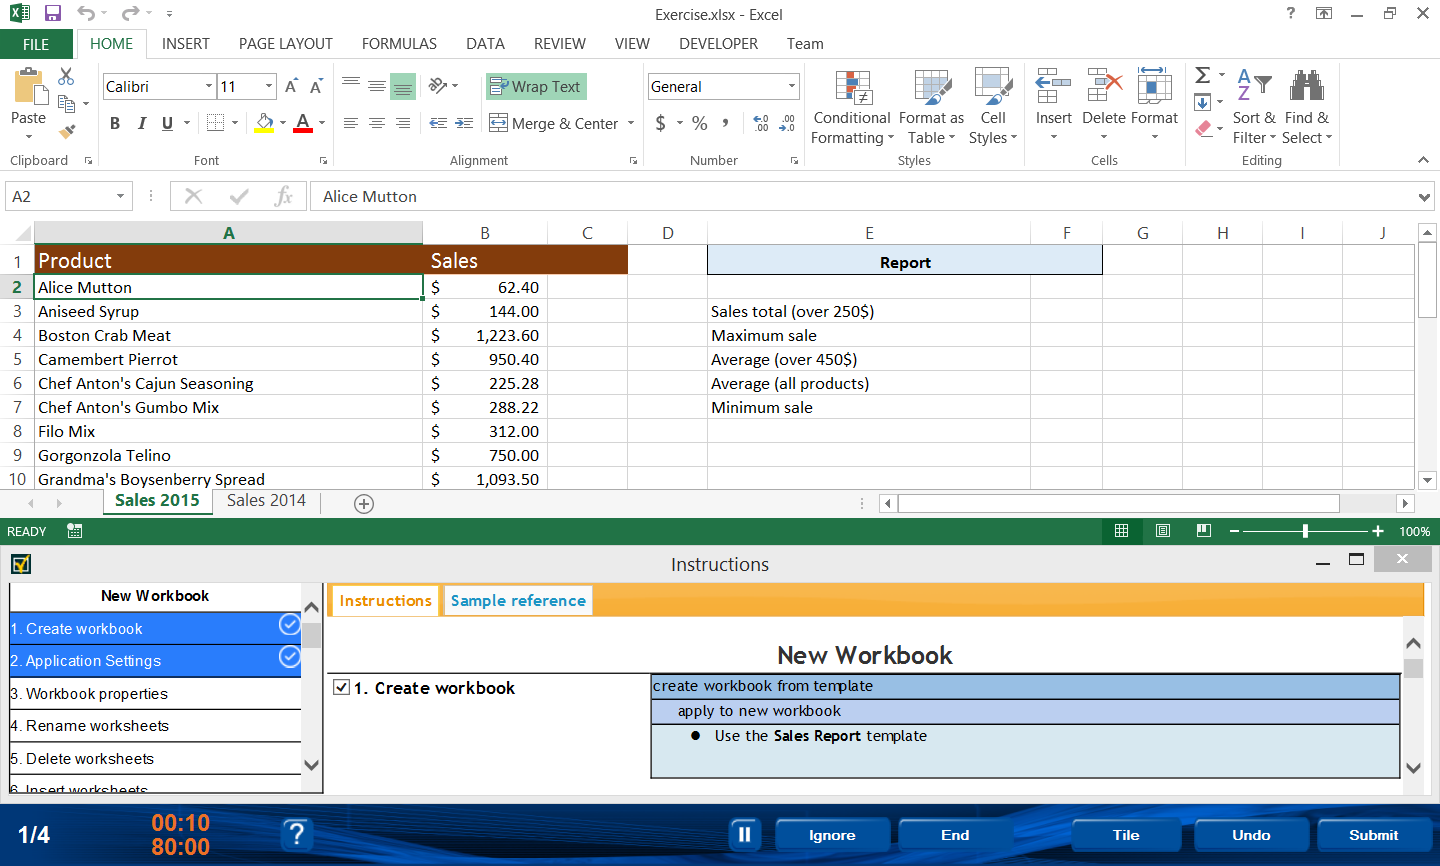 77-427 Microsoft Office Specialist Excel Expert 2013 Part 1-German version